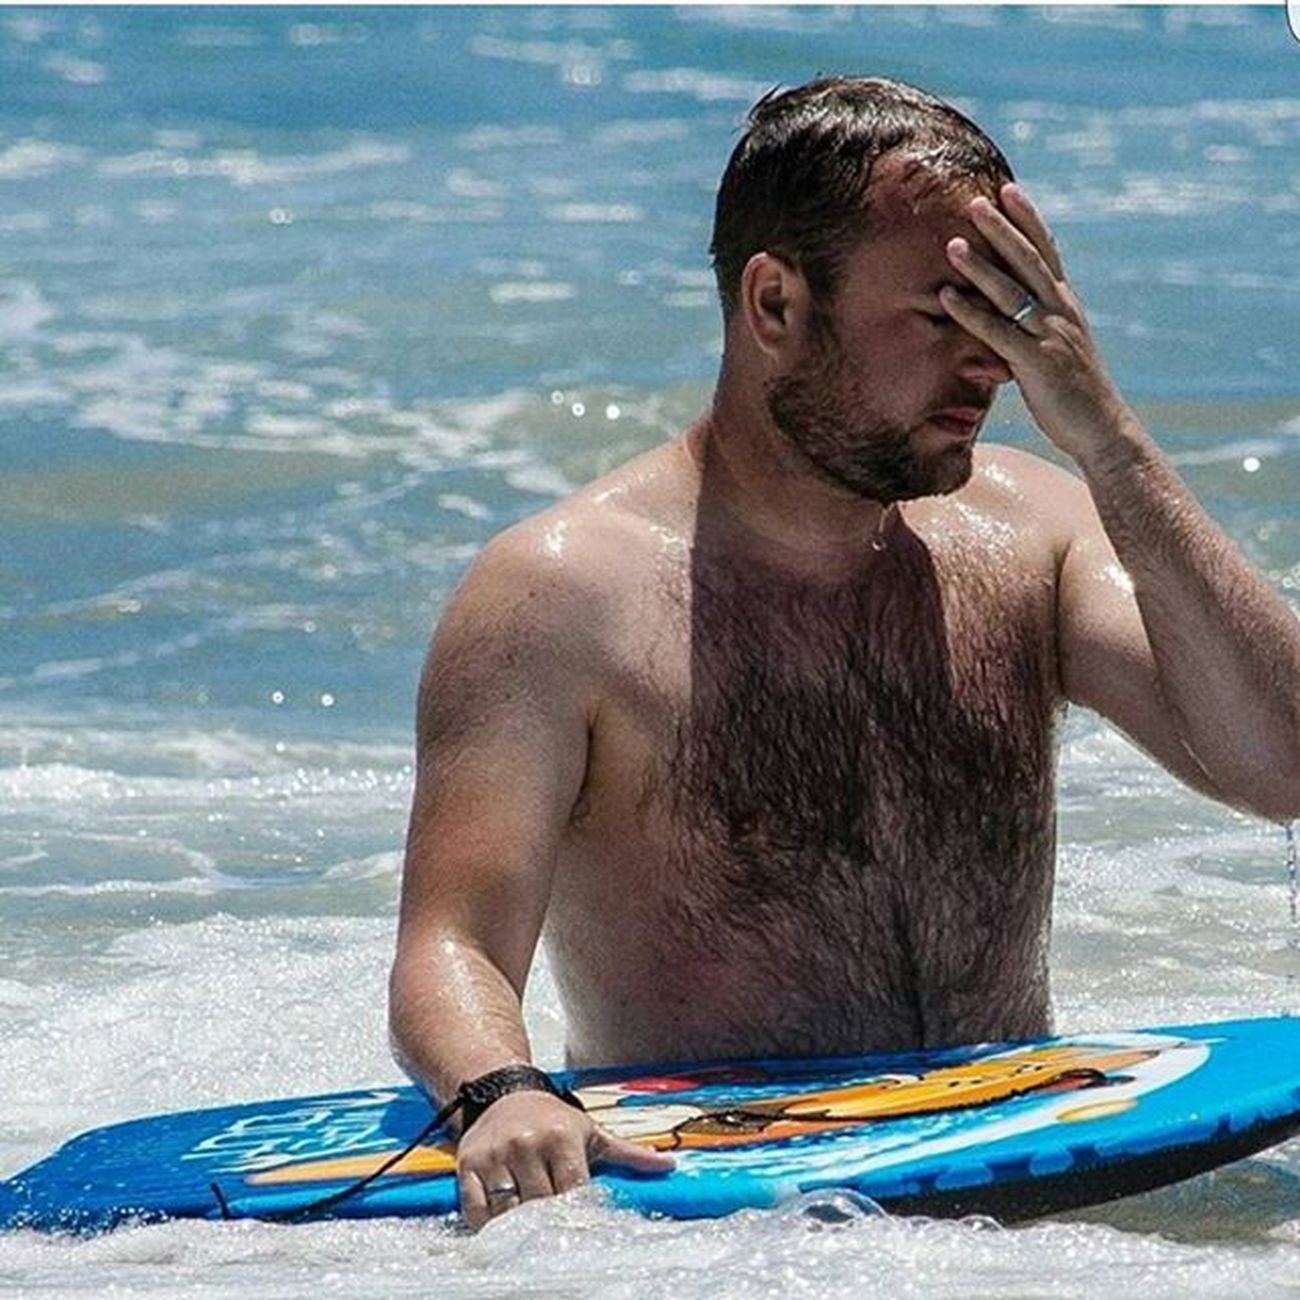 Wipeout at Santamonicabeach USA America Sea Blue Sun Instagay Instabeard Hairychest  Hairygay Gay Holiday Travel Fun Me Water Photooftheday Picoftheday Pictureoftheday